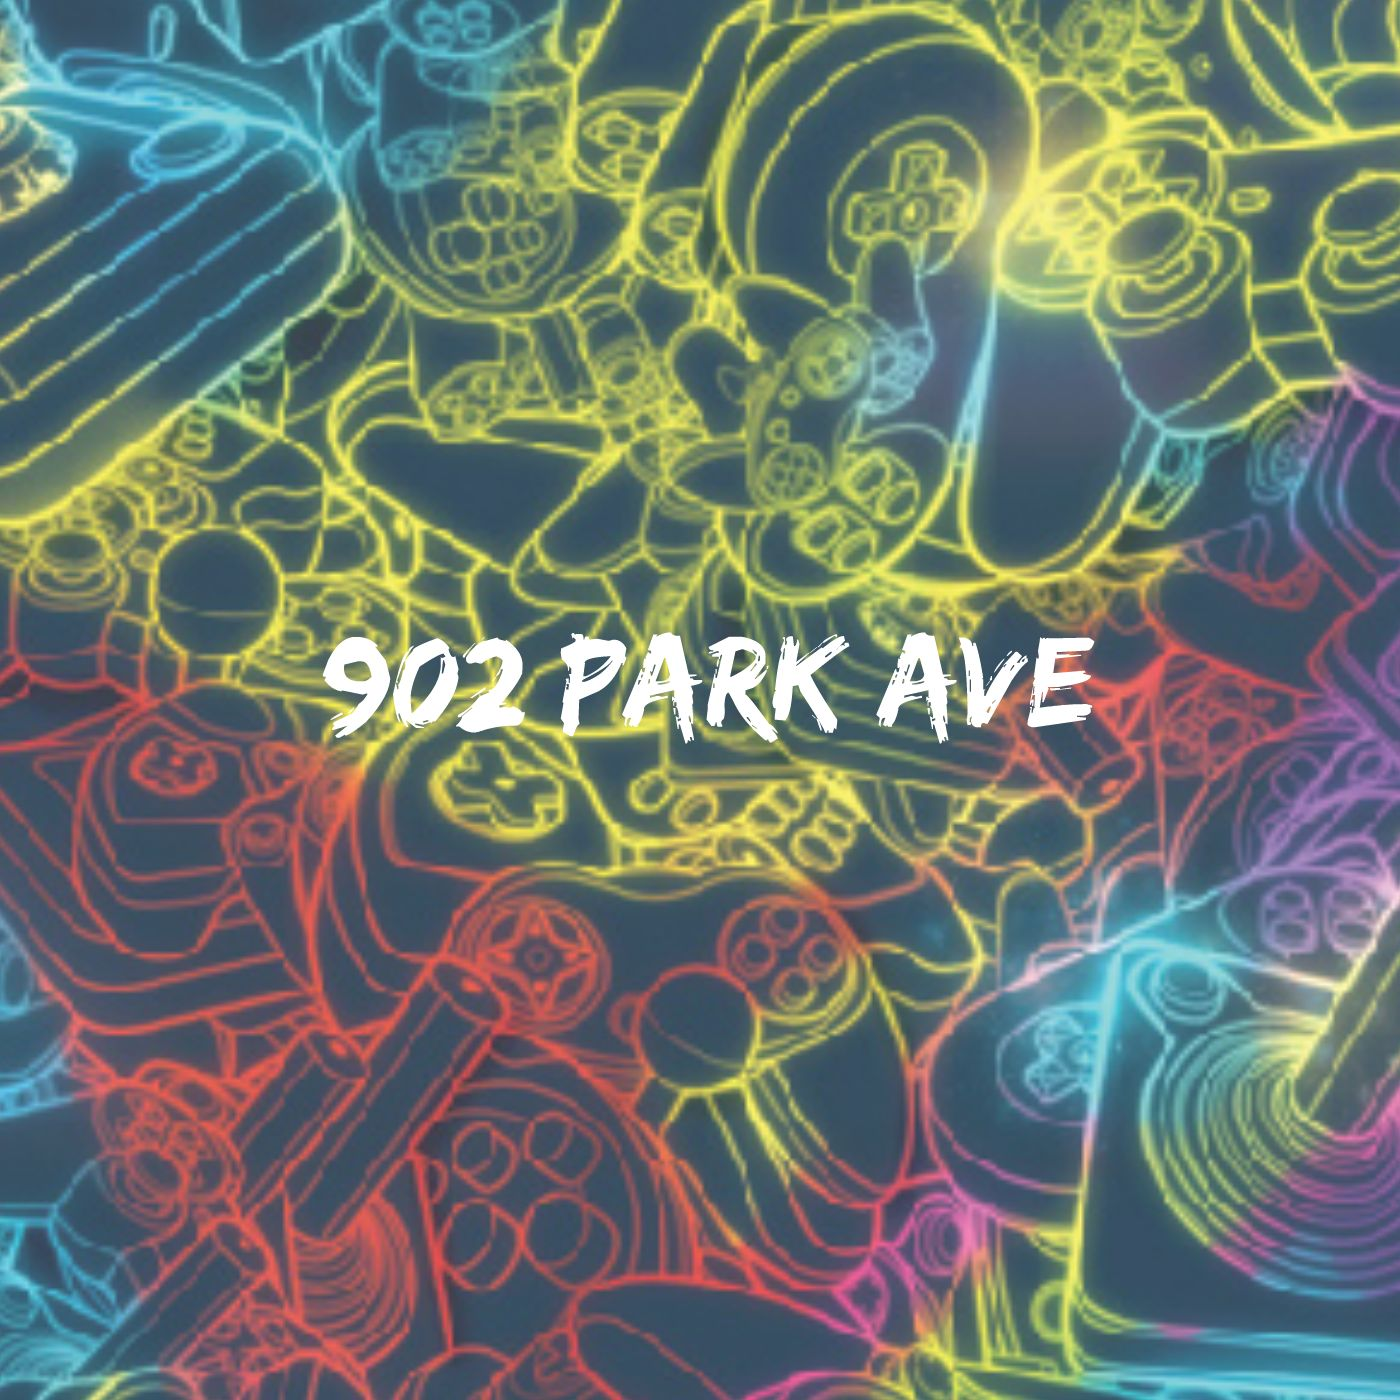 902 Park Ave Podcast